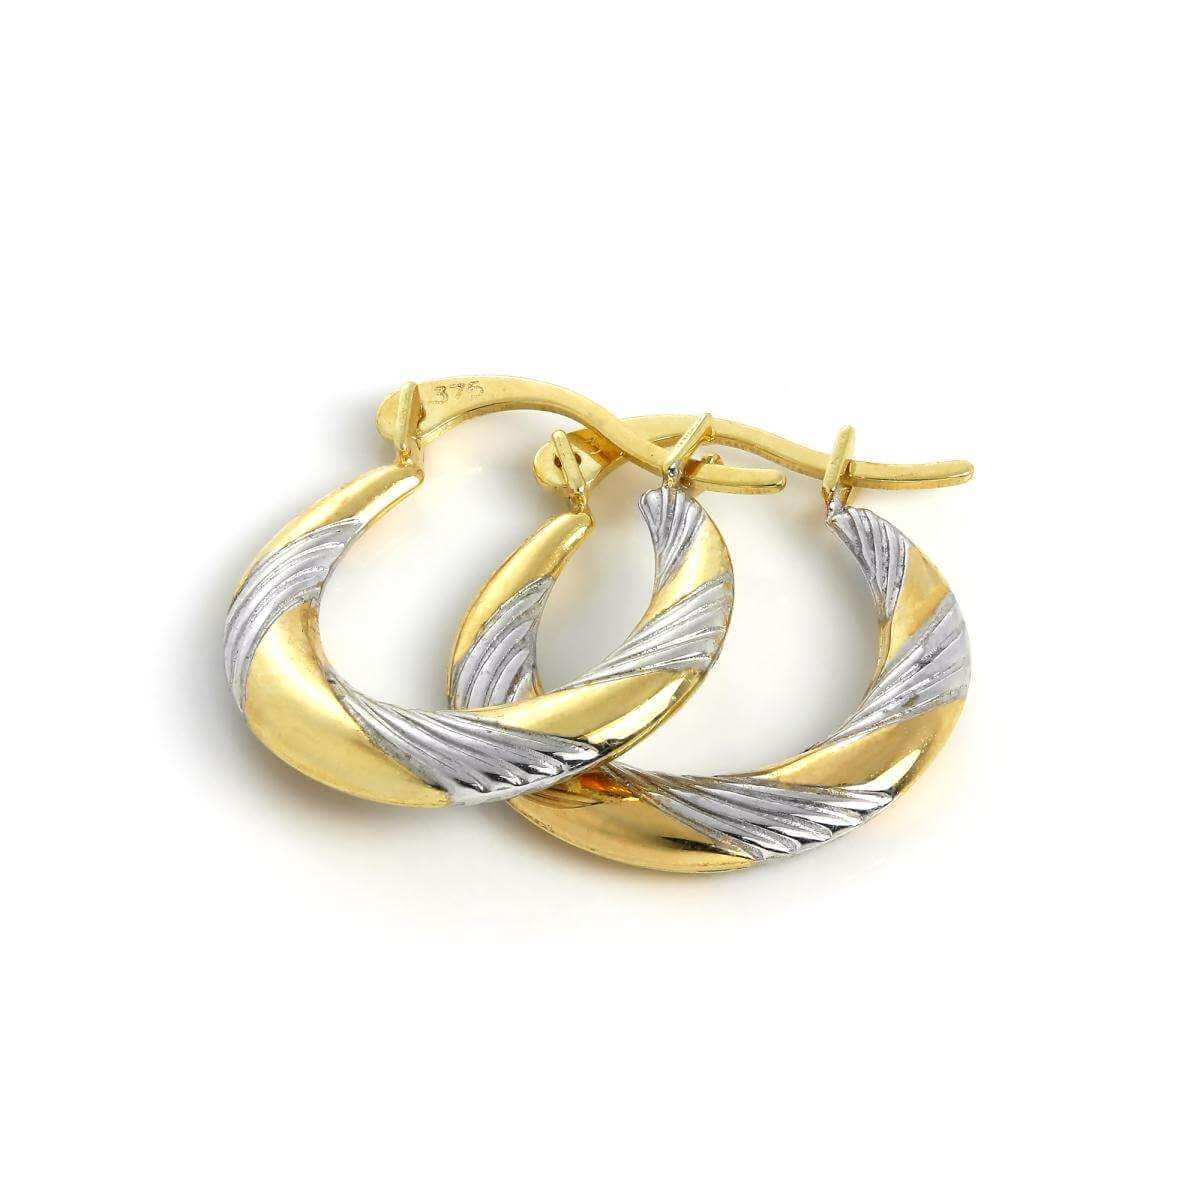 9ct White & Yellow Gold Twisted Creole 13mm Hoop Earrings